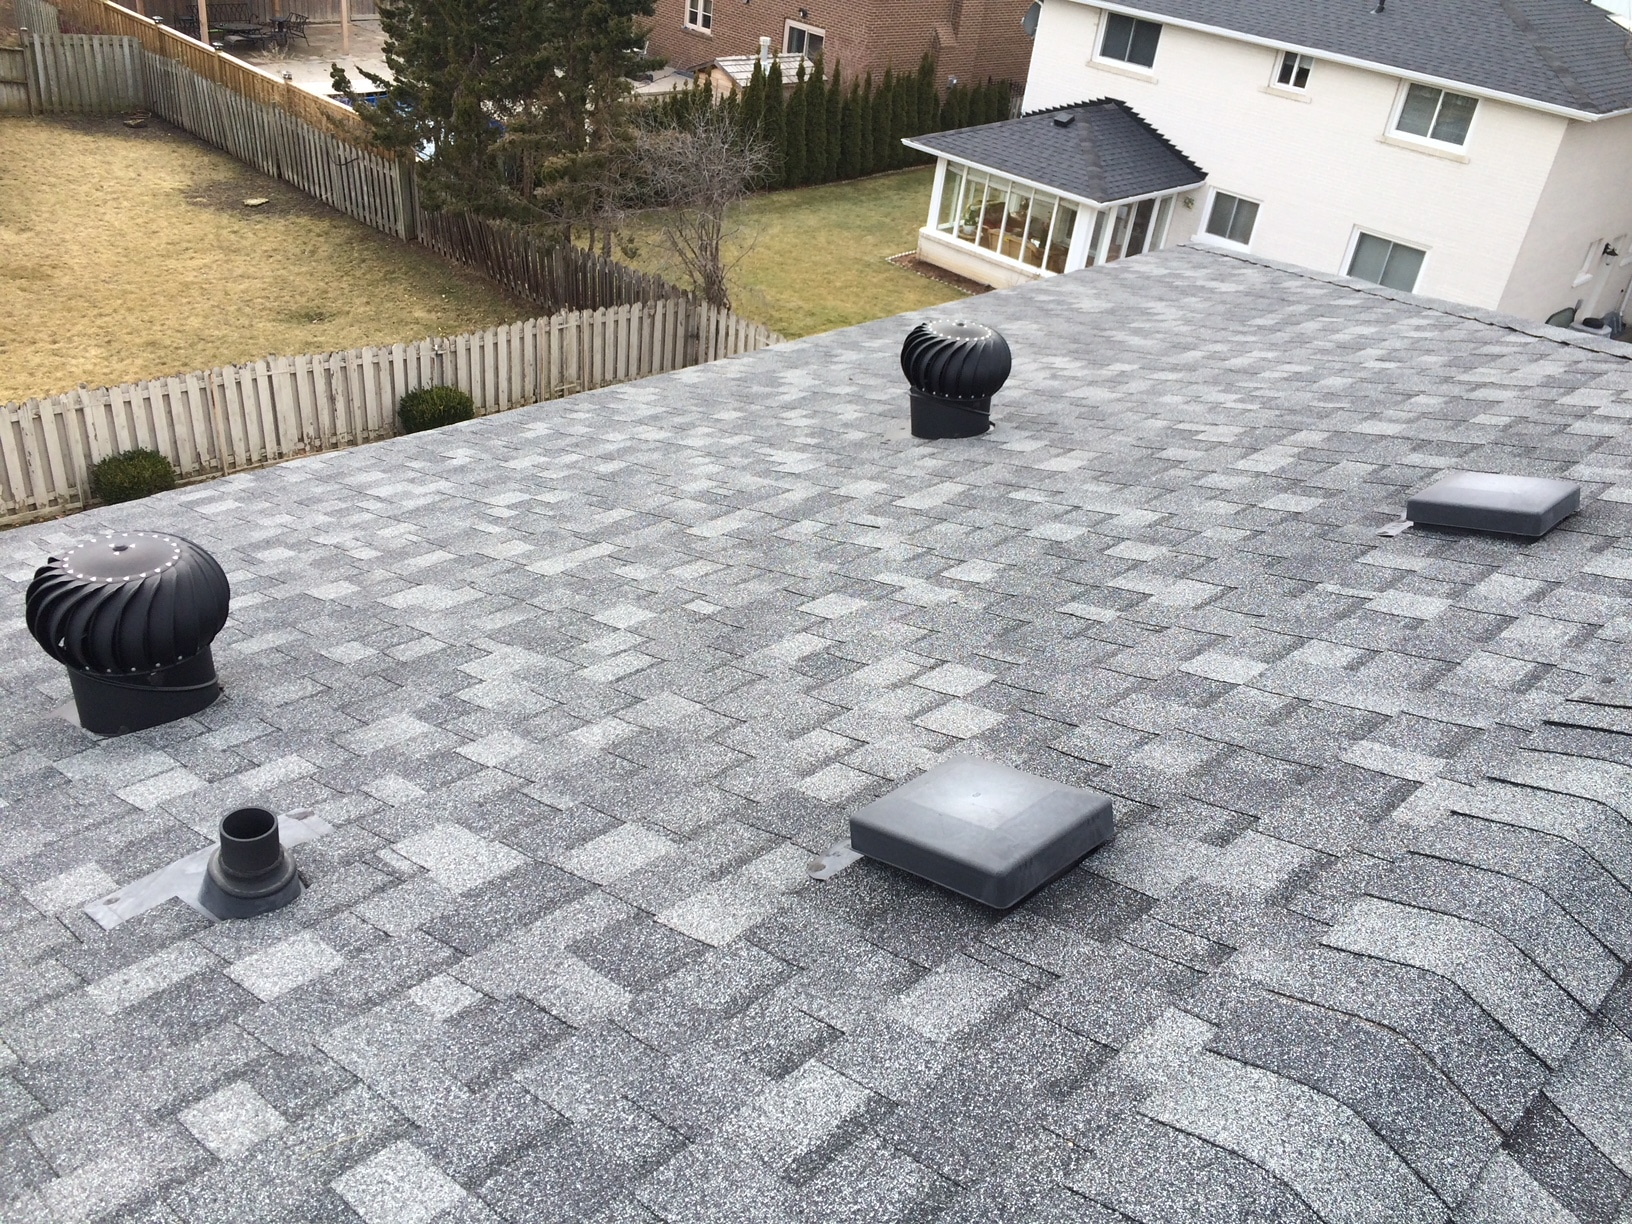 Asphalt shingles on residential roof in Woodbridge